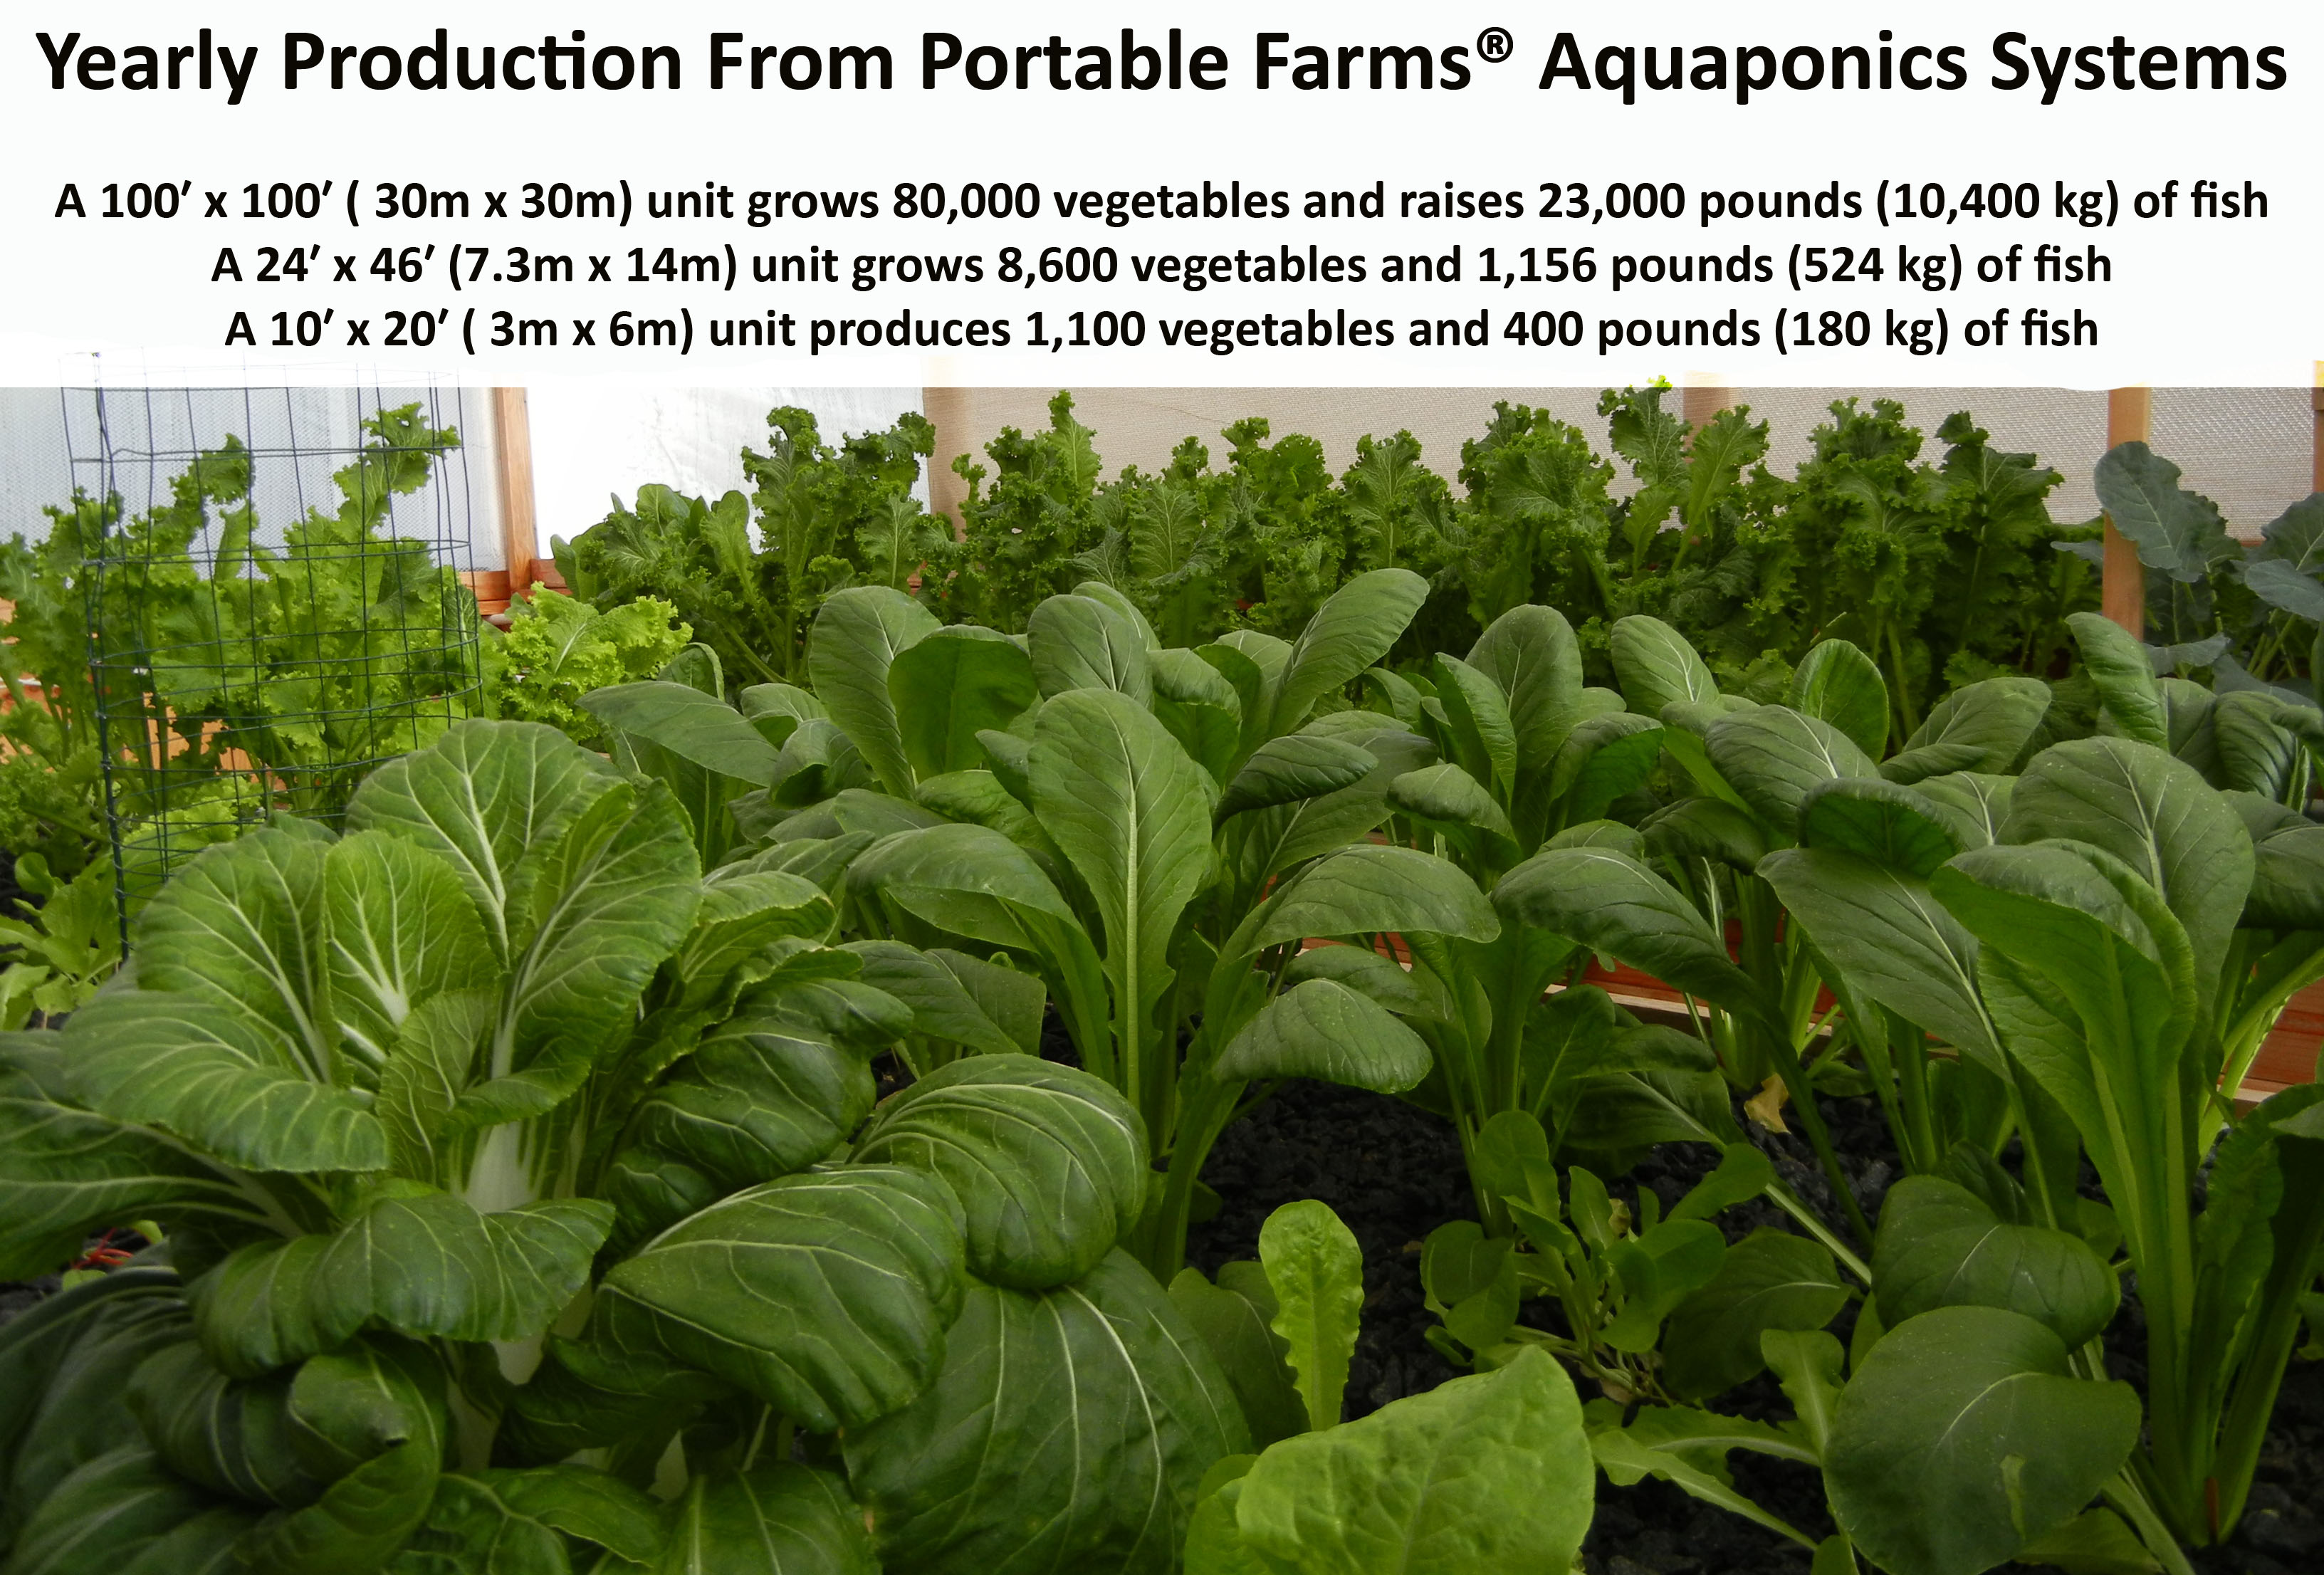 Aquaponics University Presents Portable Farms Aquaponics